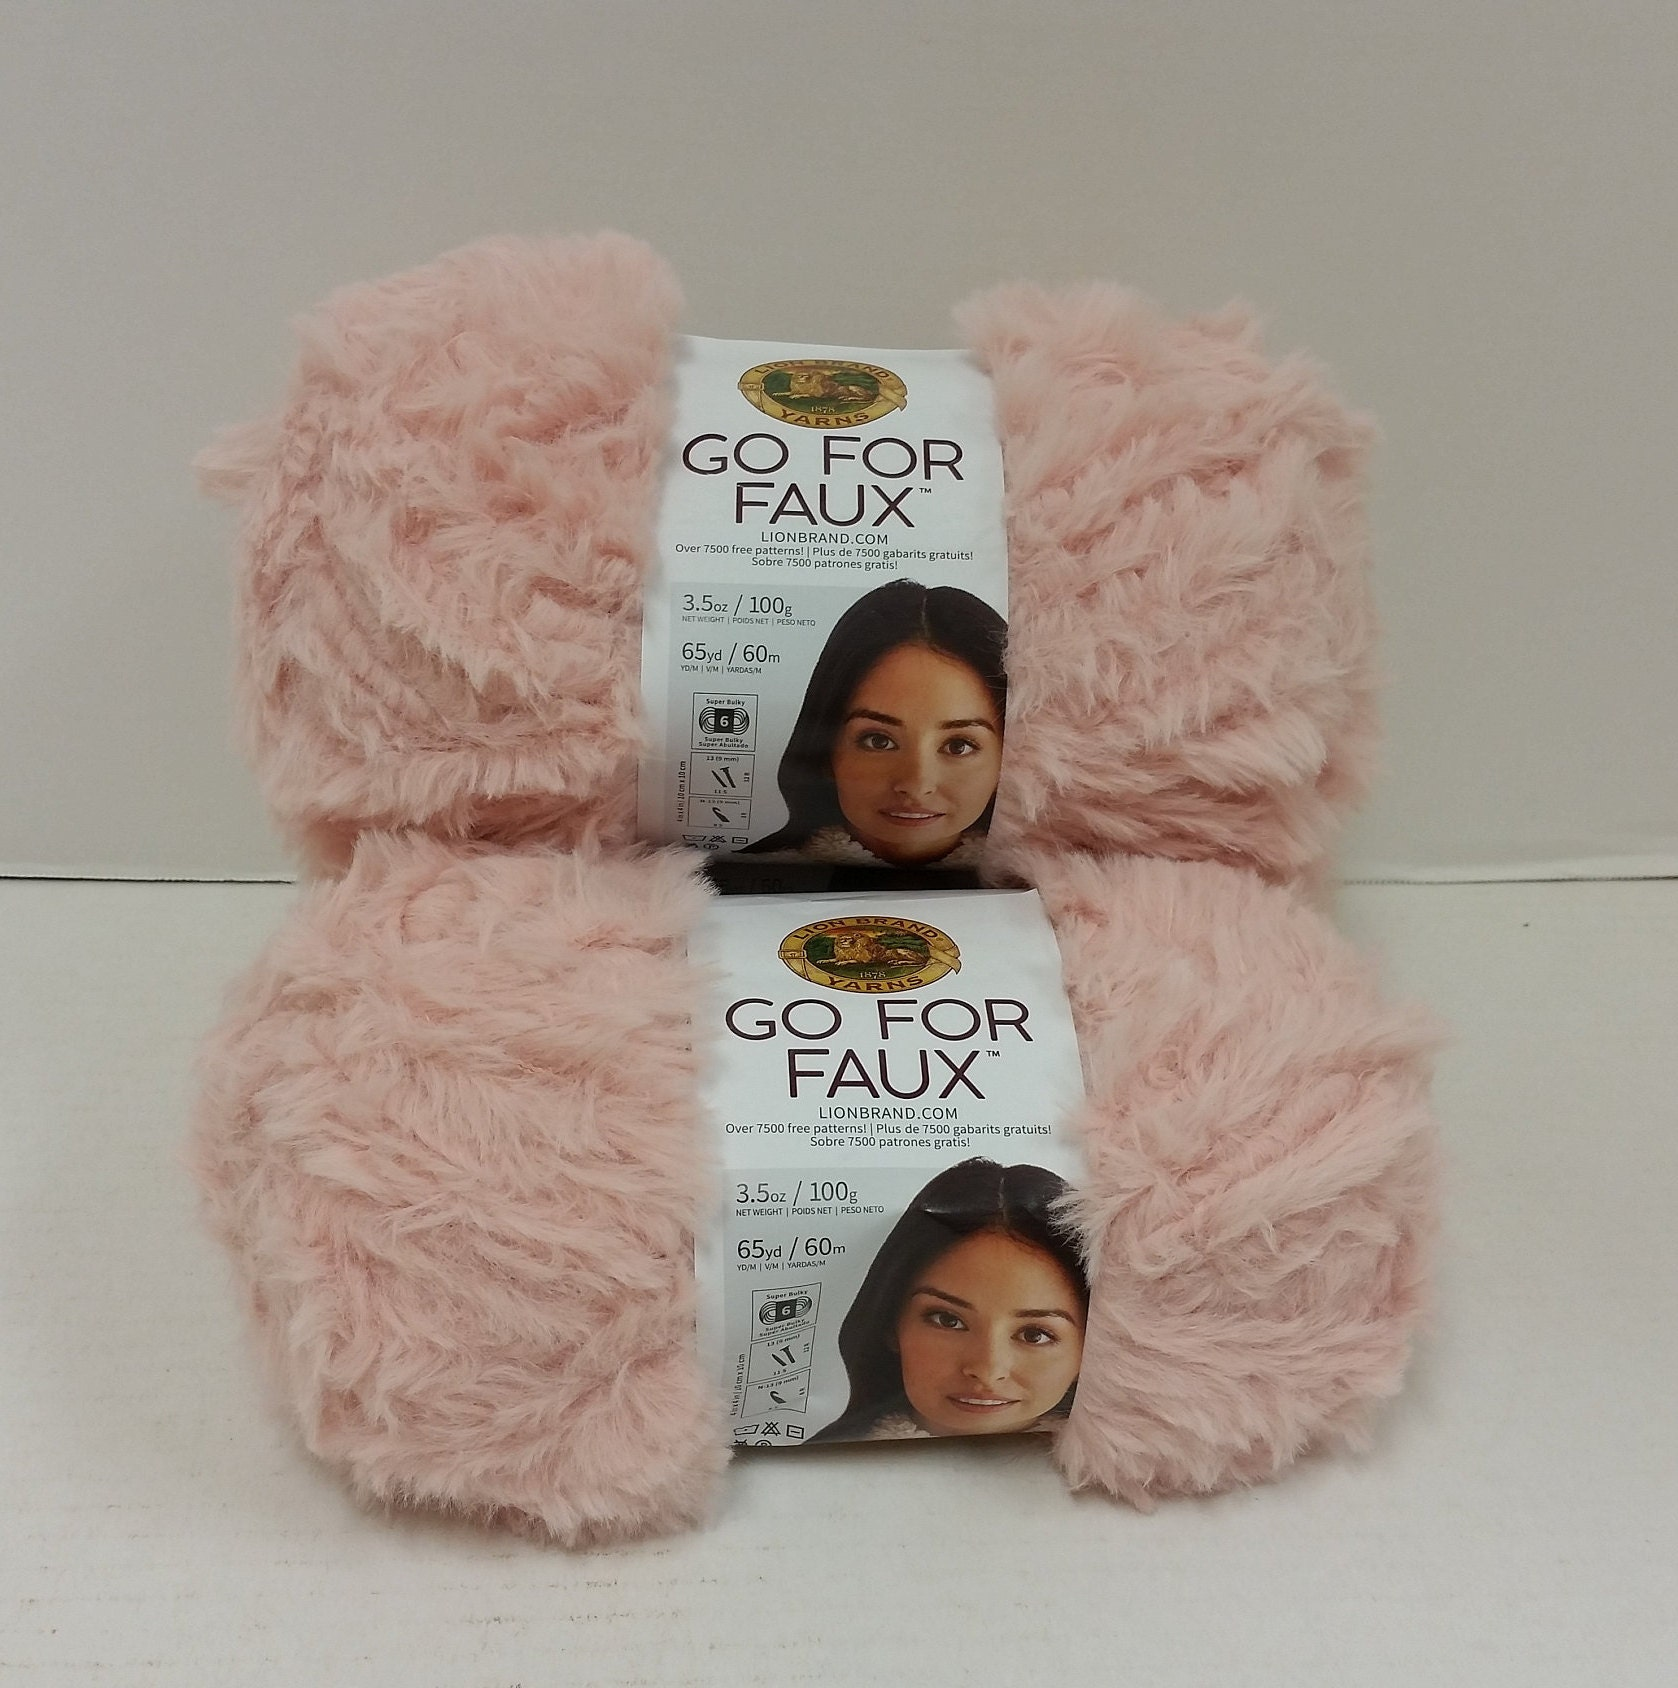 1 Skein (70 skeins Available) Lion Brand Go For Faux Yarn, Color Pink  Poodle, Dye Lot 14847 and 15033, 3 5oz/100g, 65yd/60m, Super Bulky 6